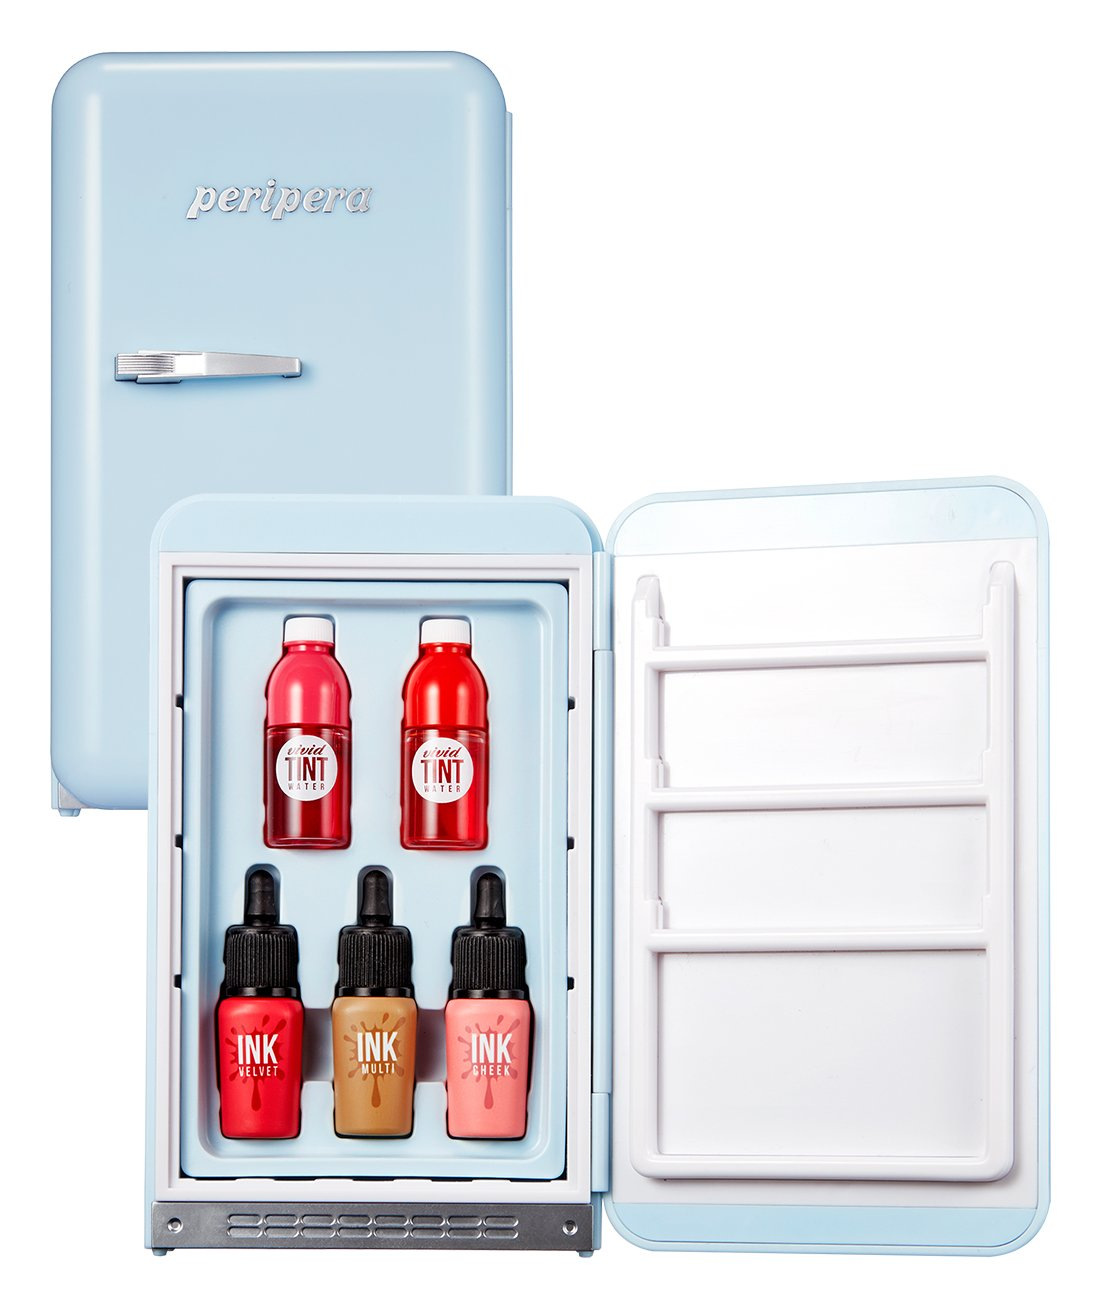 Peripera Peri's Mini Fridge Training Material Daldal Factory 0.12 x 0.07, 0.09 x 0.10 Ounce 002 Daldal Blue